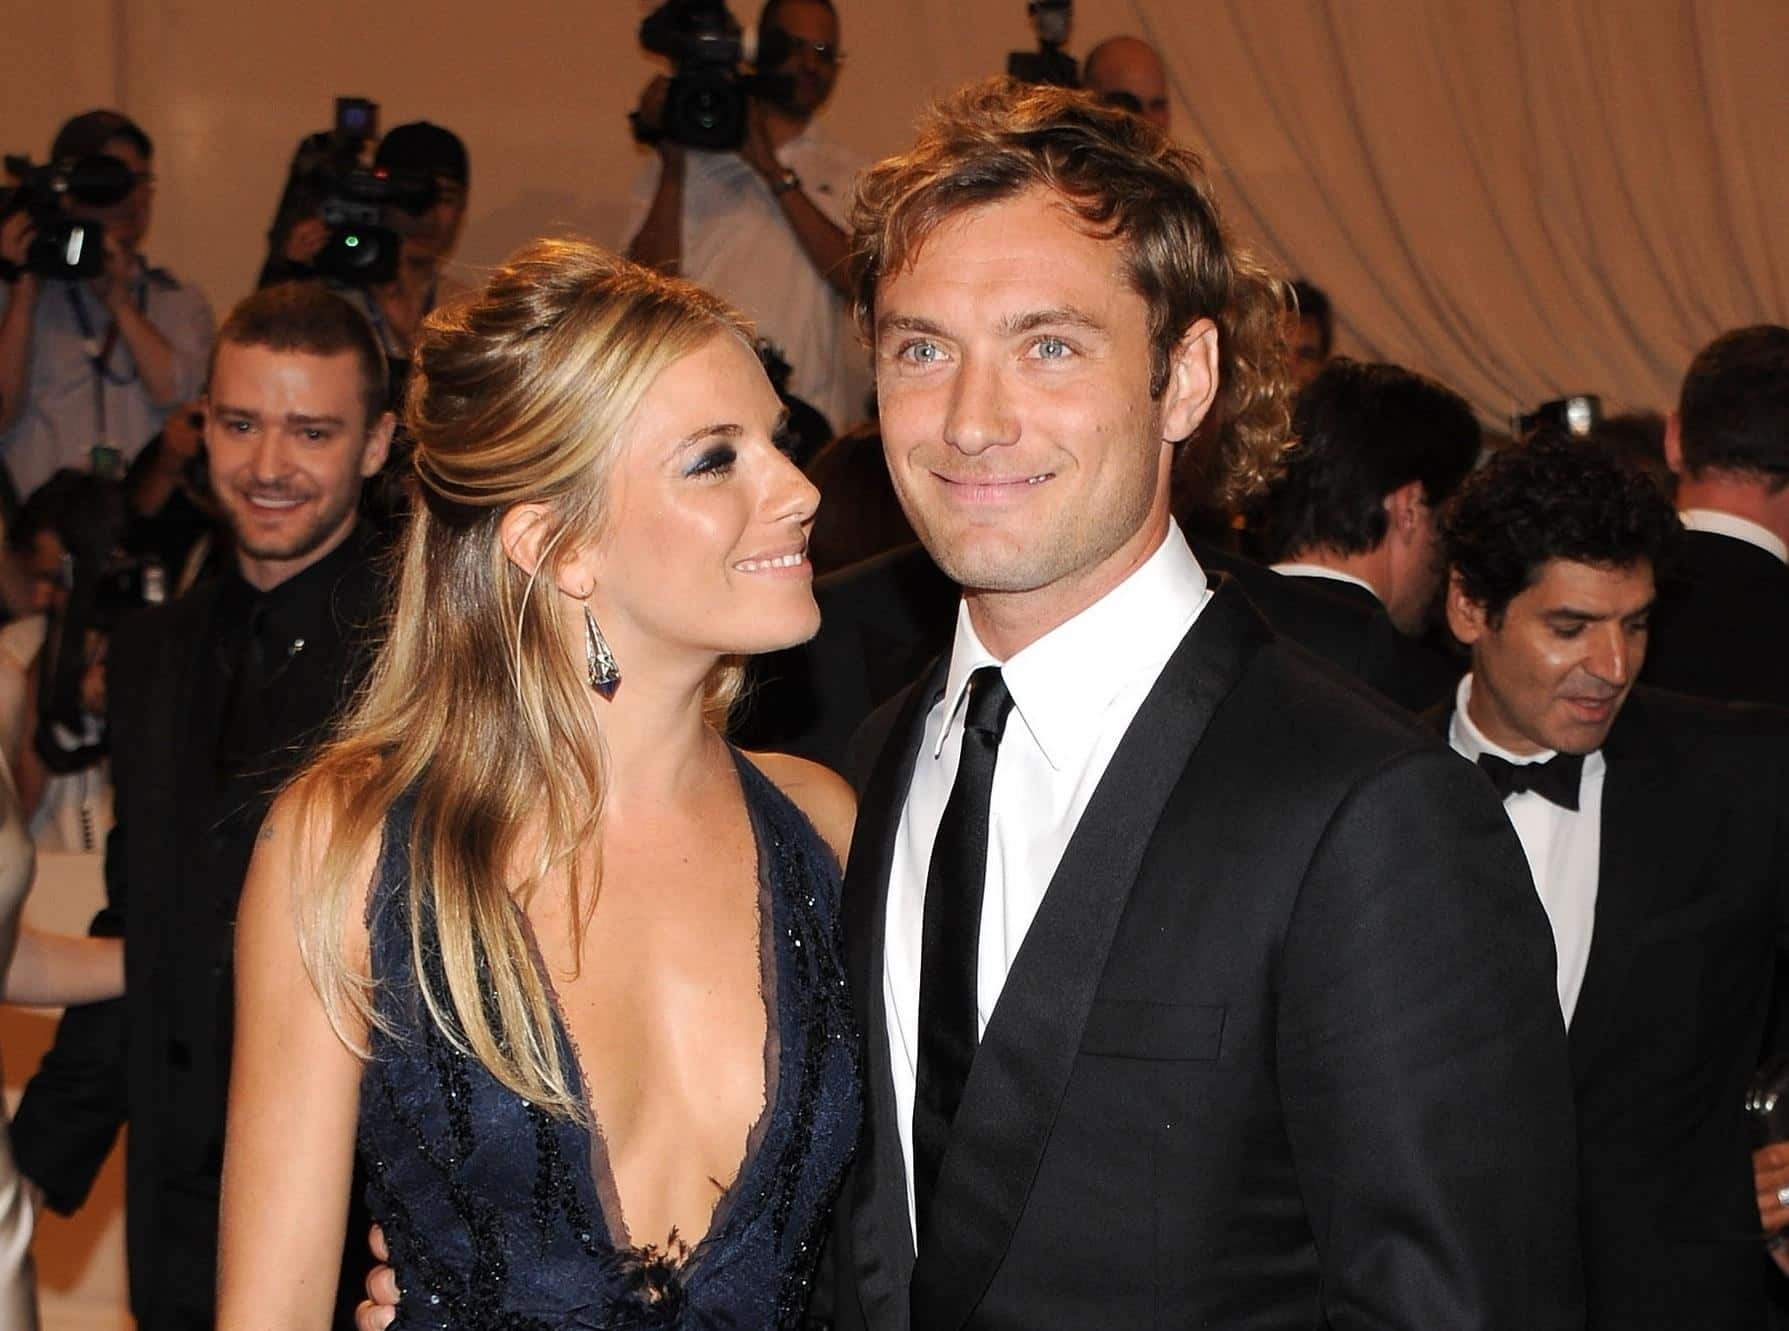 7 Hollywood Celebs Who Confessed To Cheating On Their Partners